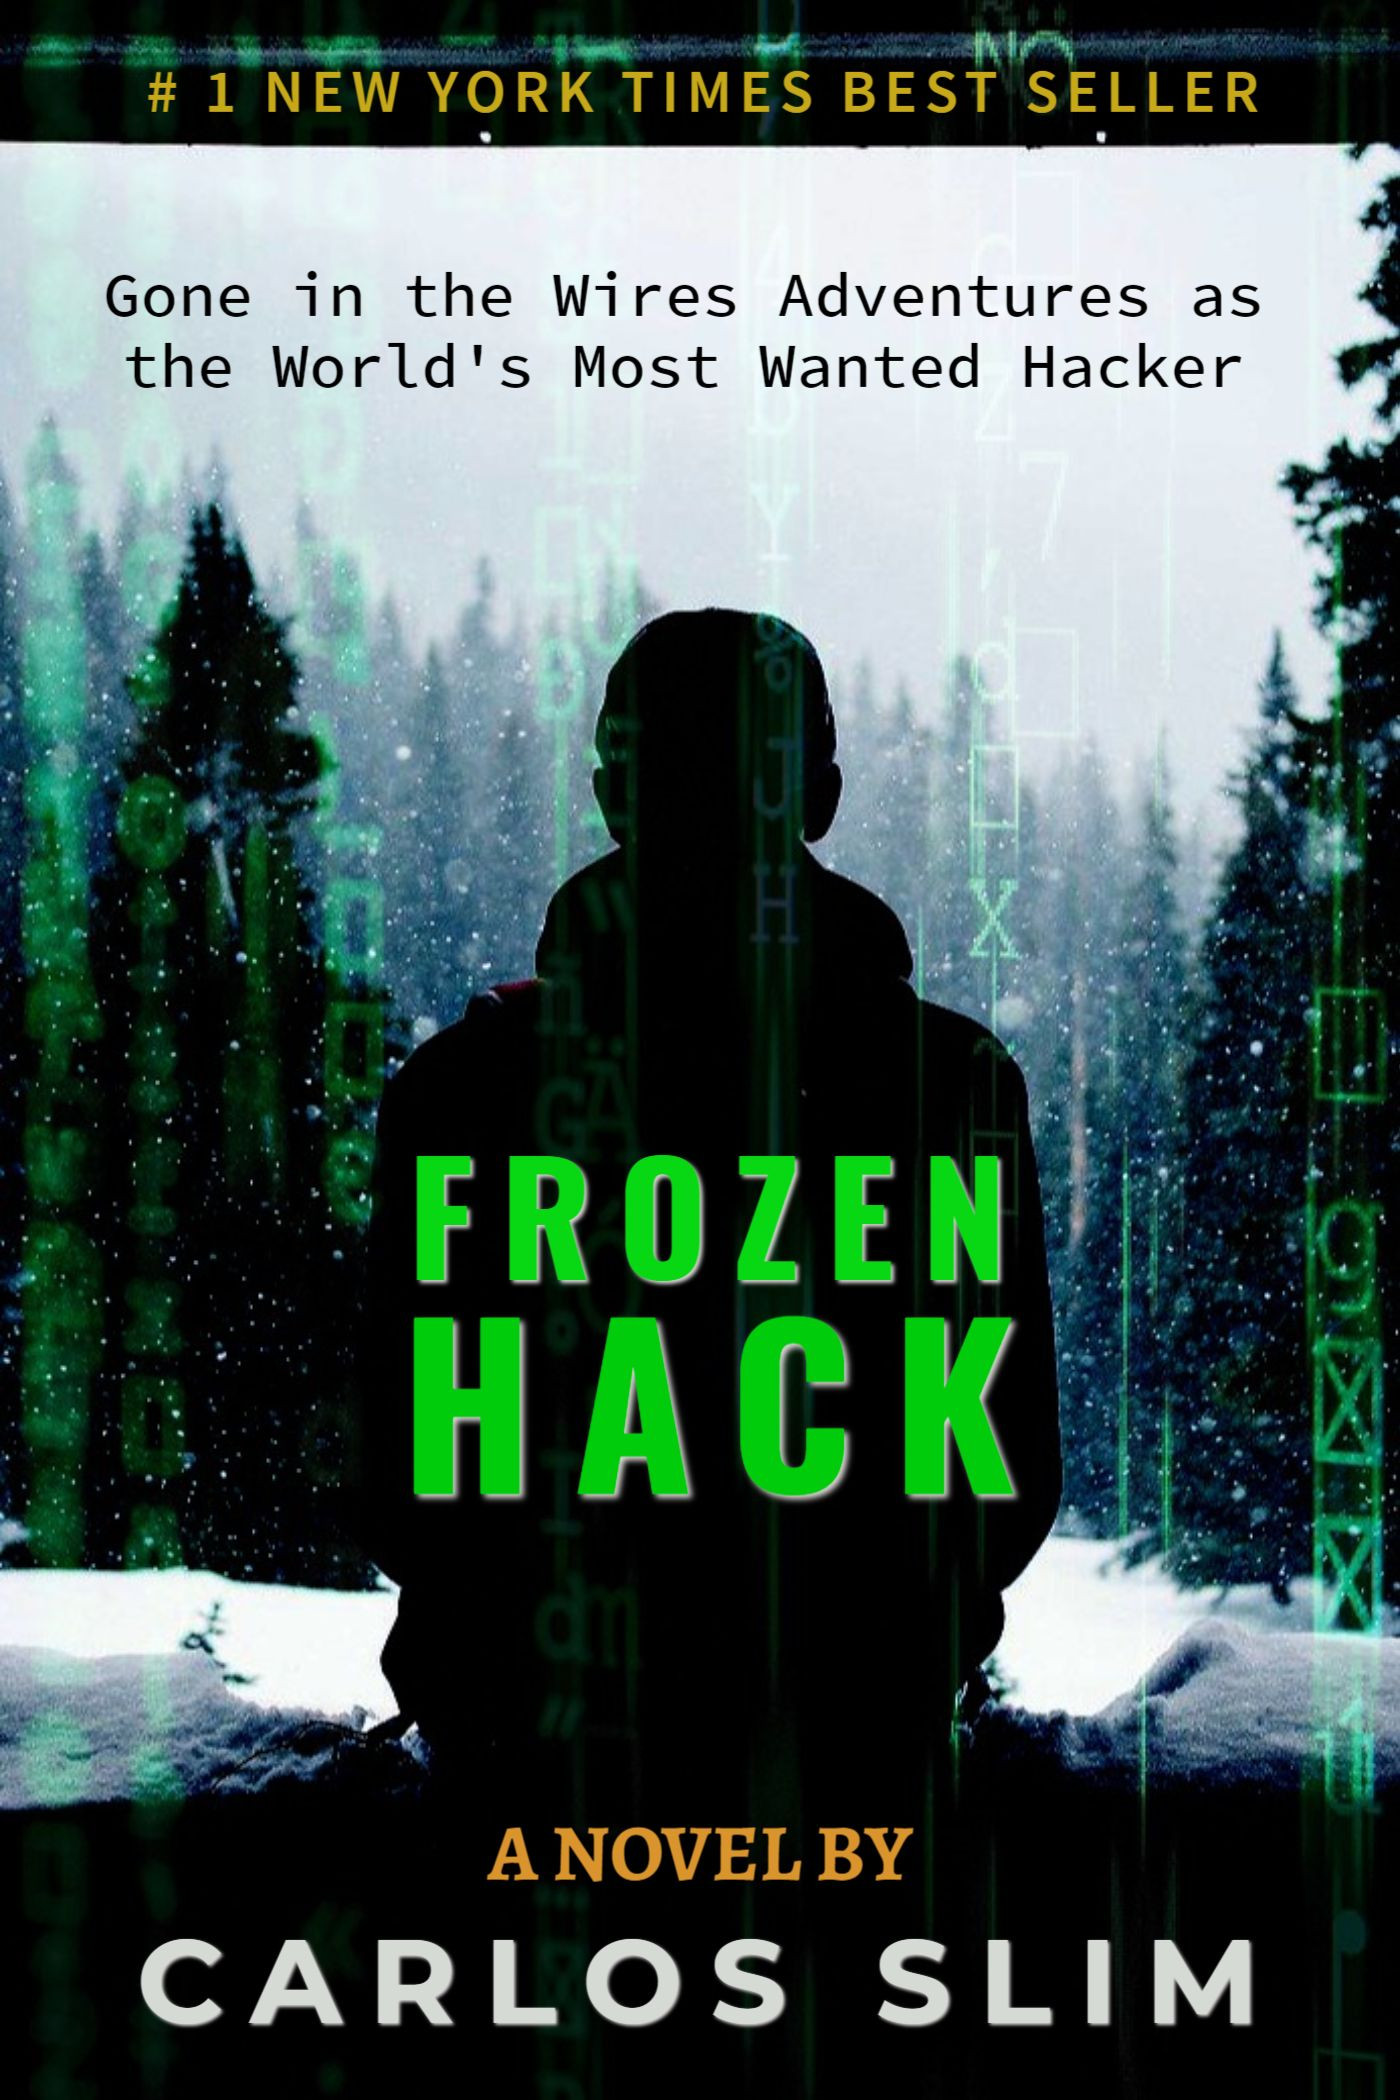 Sci Fi and Hacking Book Cover Template